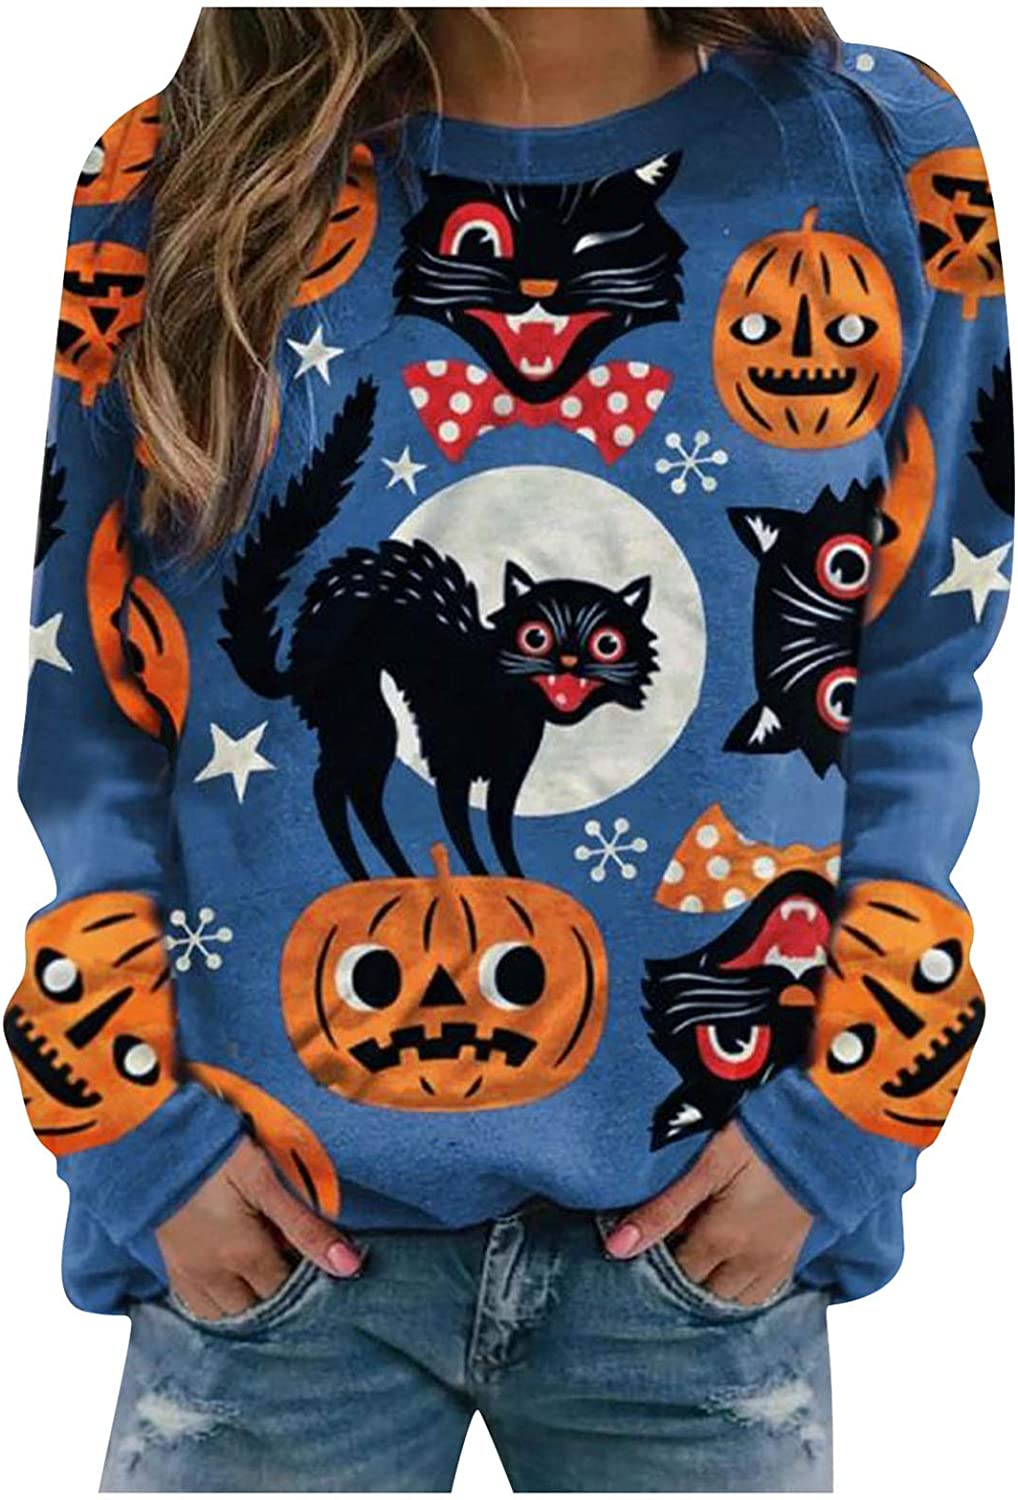 Sweatshirts for Women,Halloween Fashion Pumpkin Graphic Tops Cute Long Sleeve Round Neck Pullover Shirts for Womens